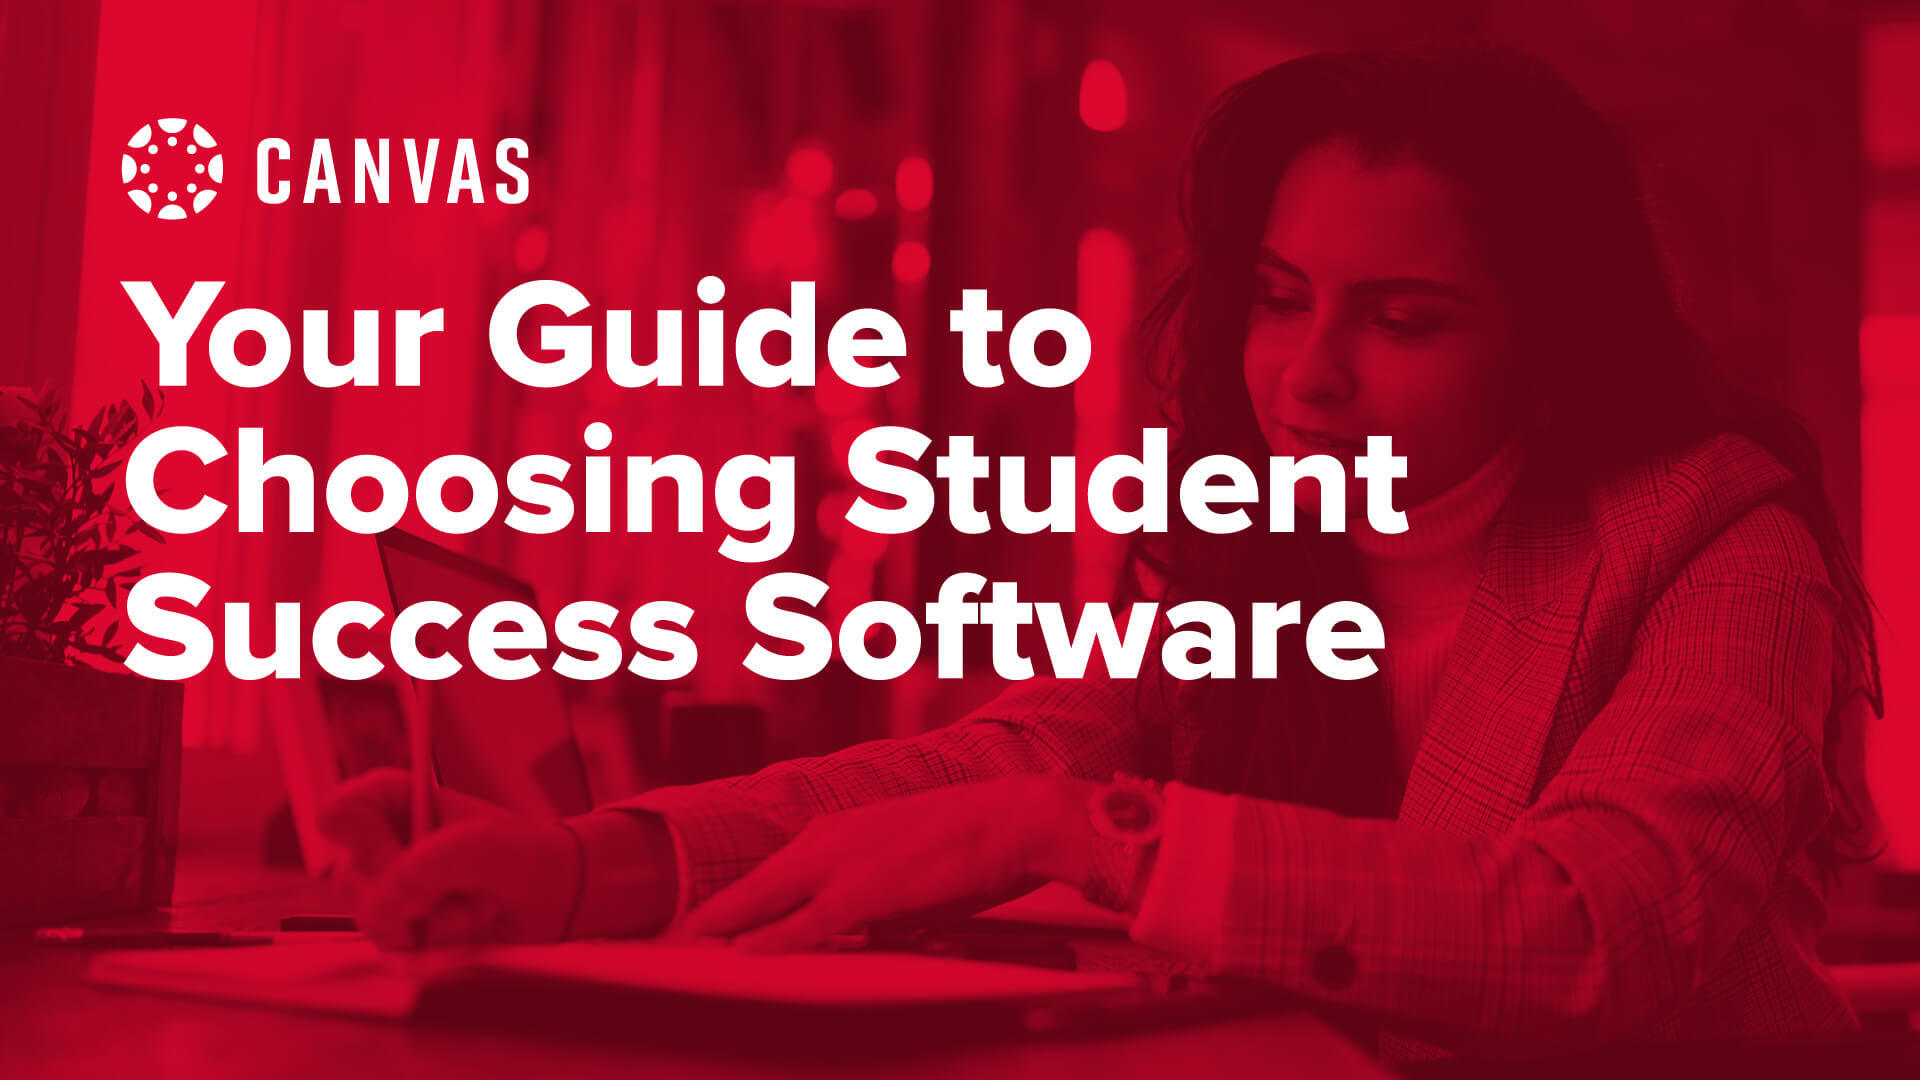 Your Guide to Choosing Student Success Software